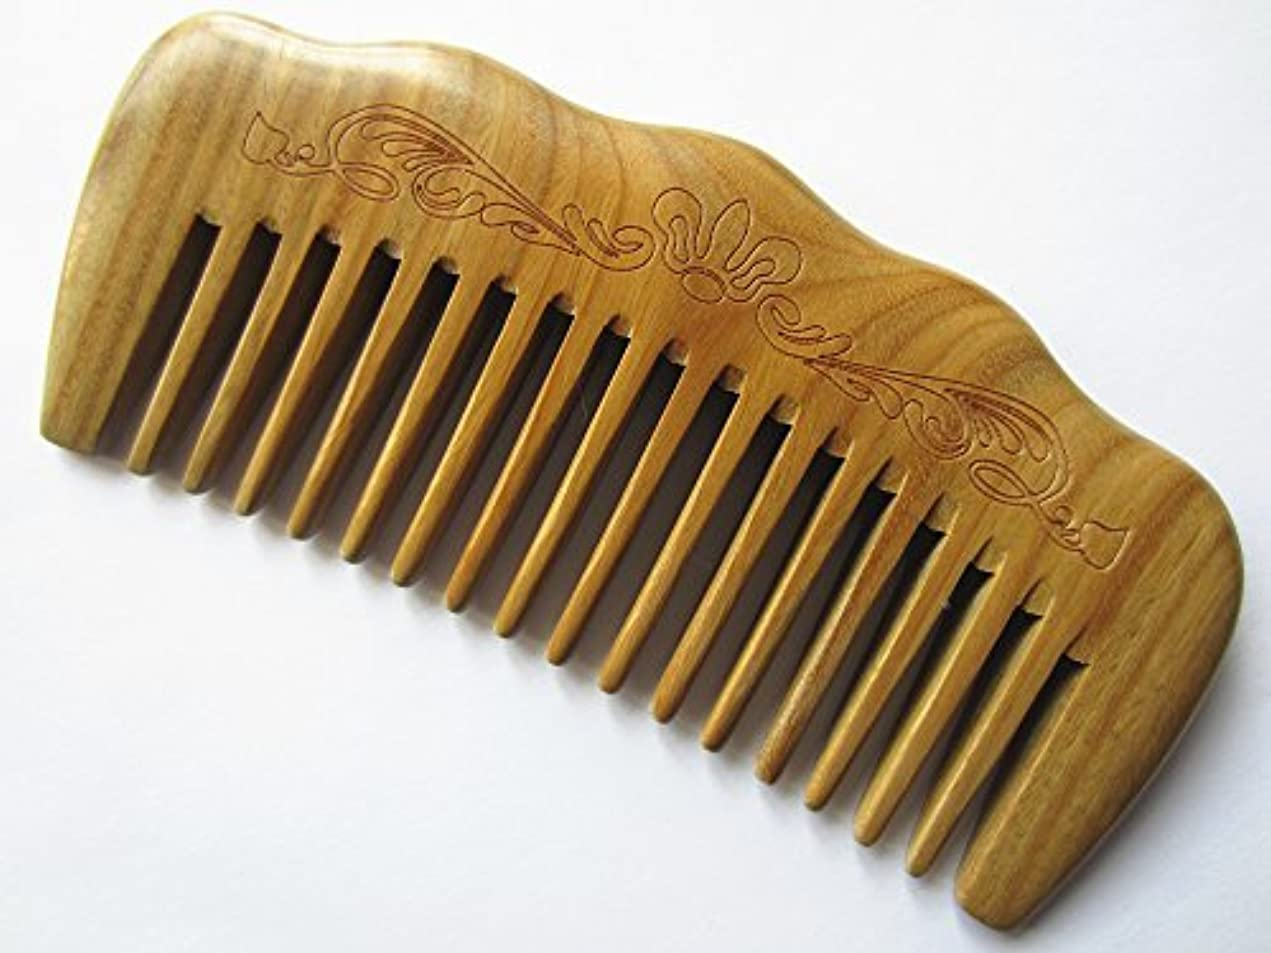 賃金主張パラシュートMyhsmooth Gs-by-mt Wide Tooth Wood Handmade Natural Green Sandalwood No Static Comb with Aromatic Scent for Detangling...